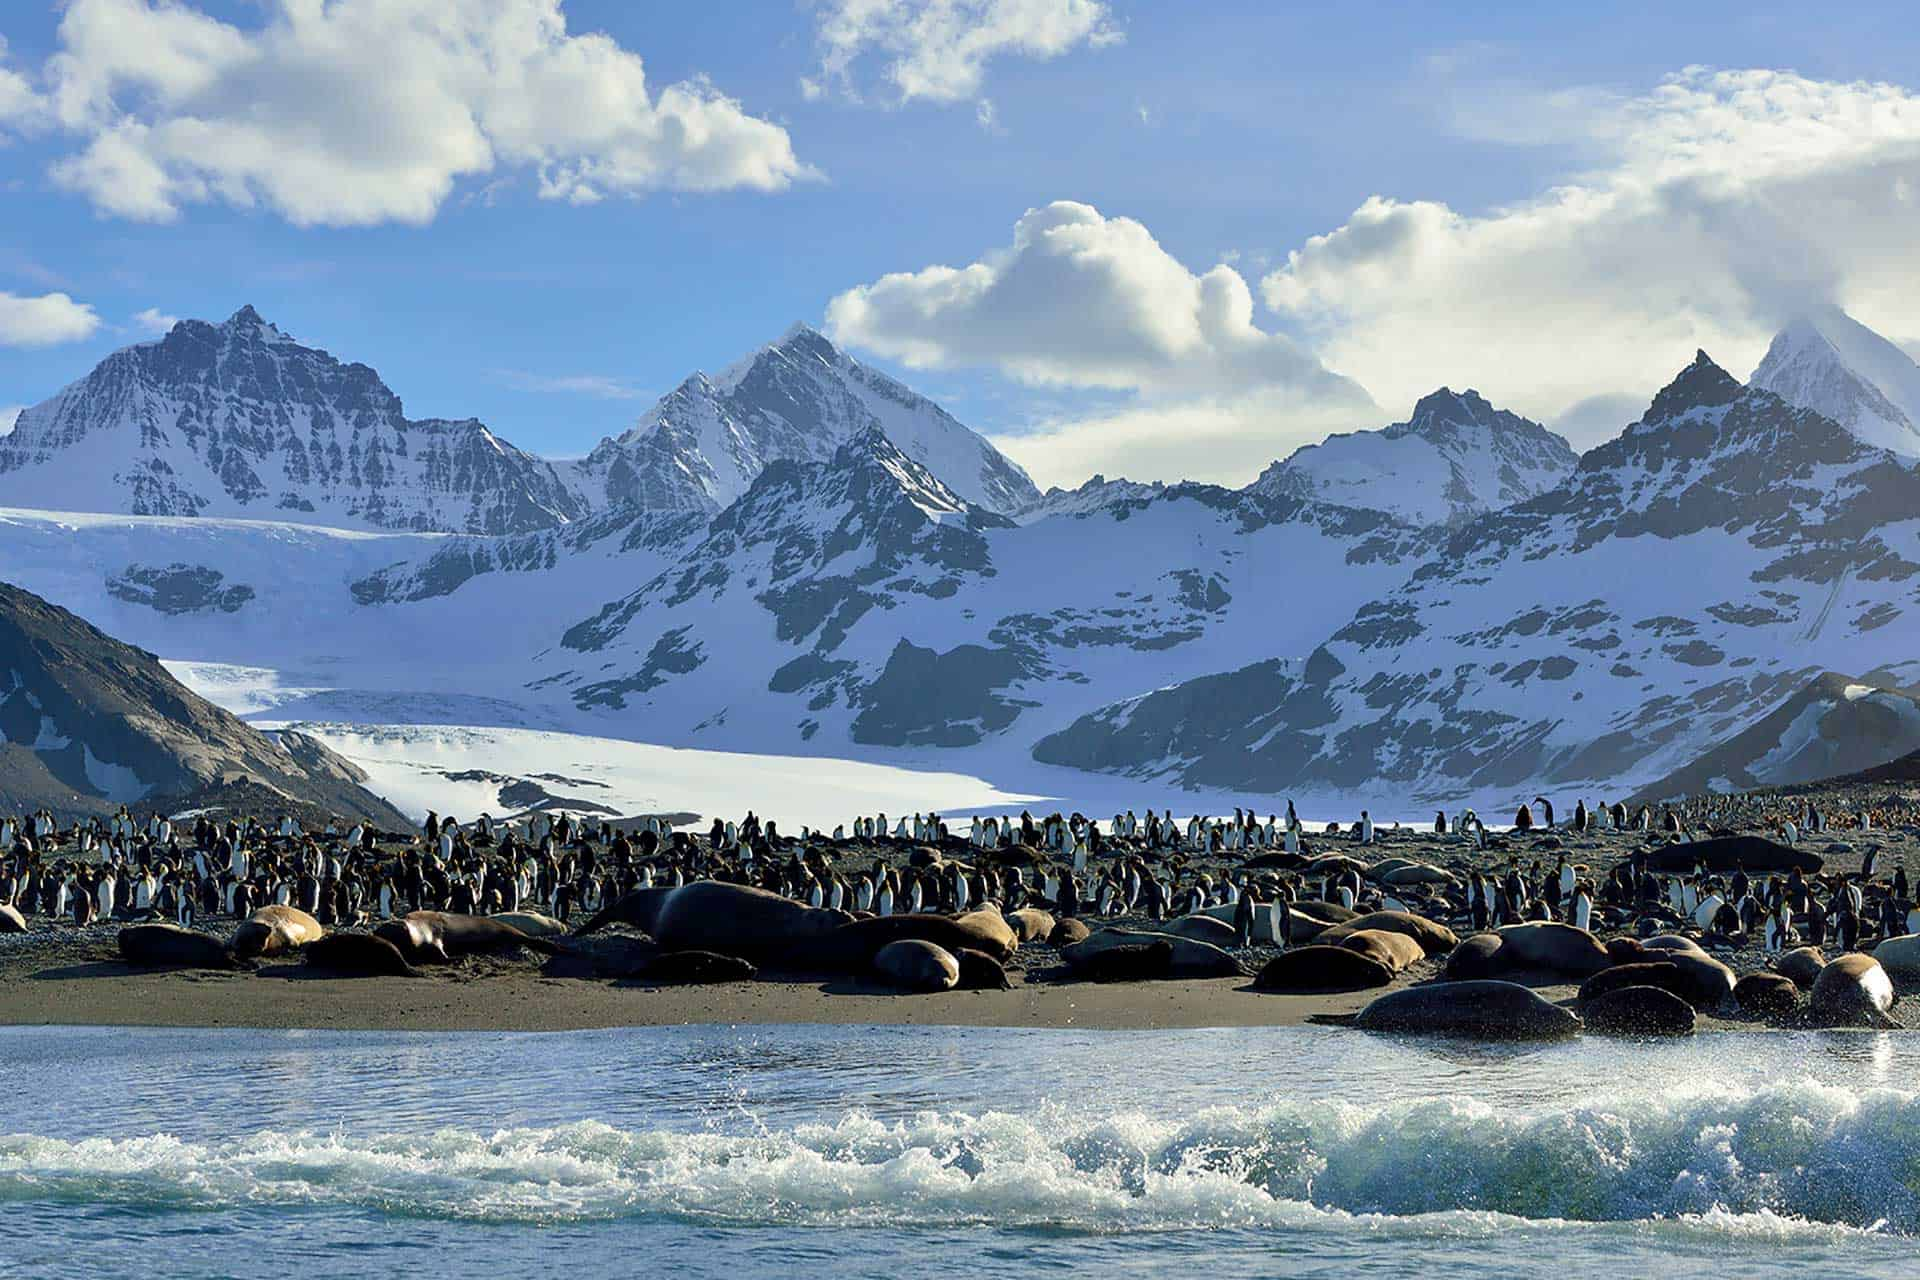 Elephant Seals and King Penguins, St Andrews Bay